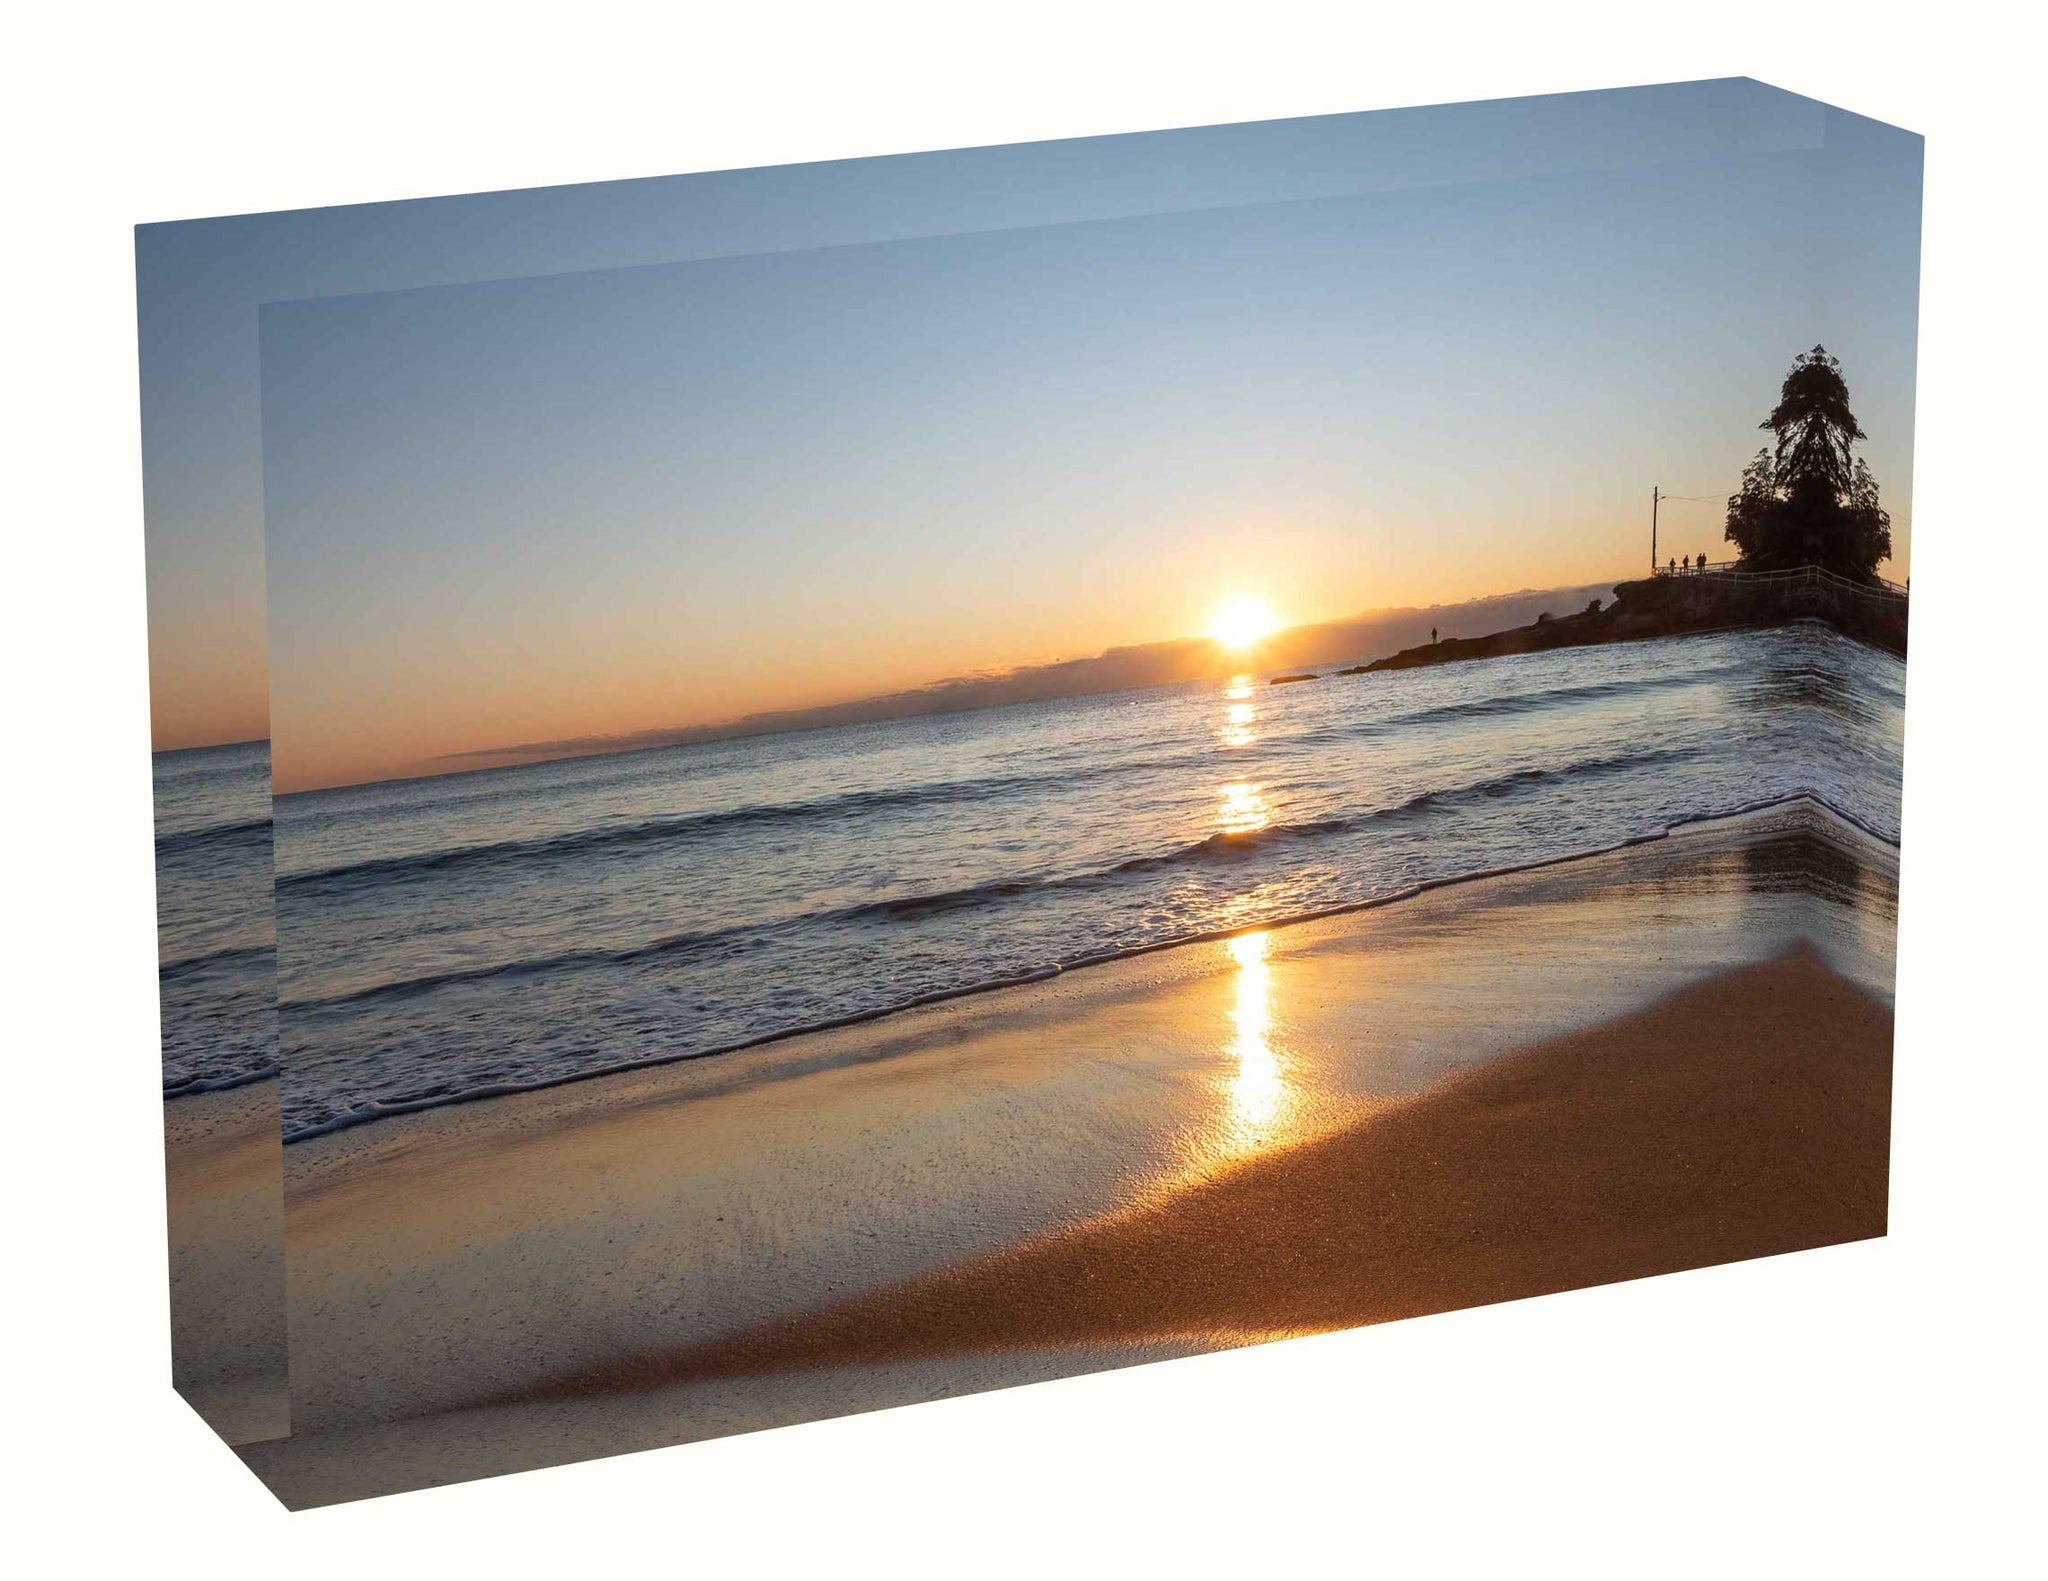 Acrylic block sunrise photo from 3rd May 2020 at Manly beach, Sydney